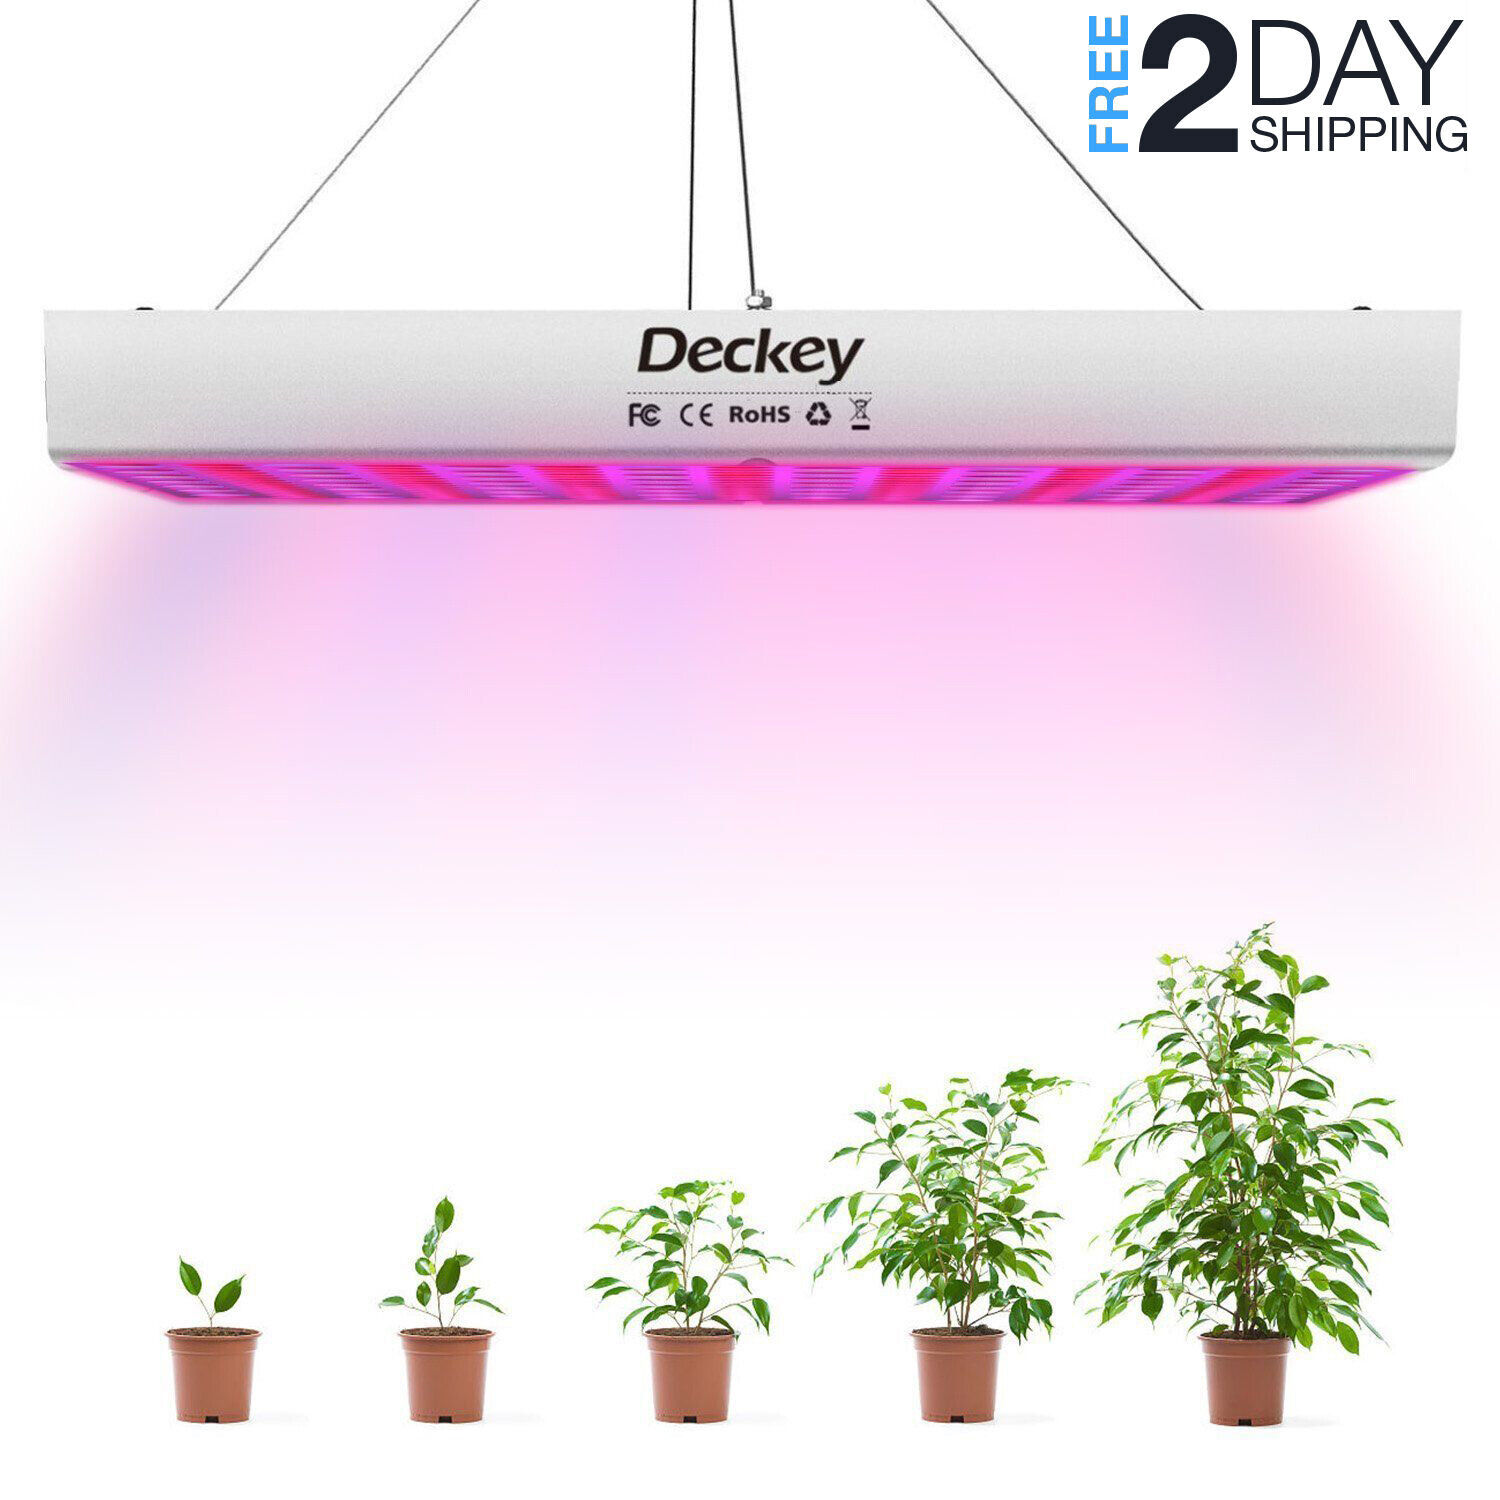 New LED Grow Light 225LED UV IR Growing Lamp for Indoor Plants Hydroponic Plant Deckey 4316270677 for 24.99.